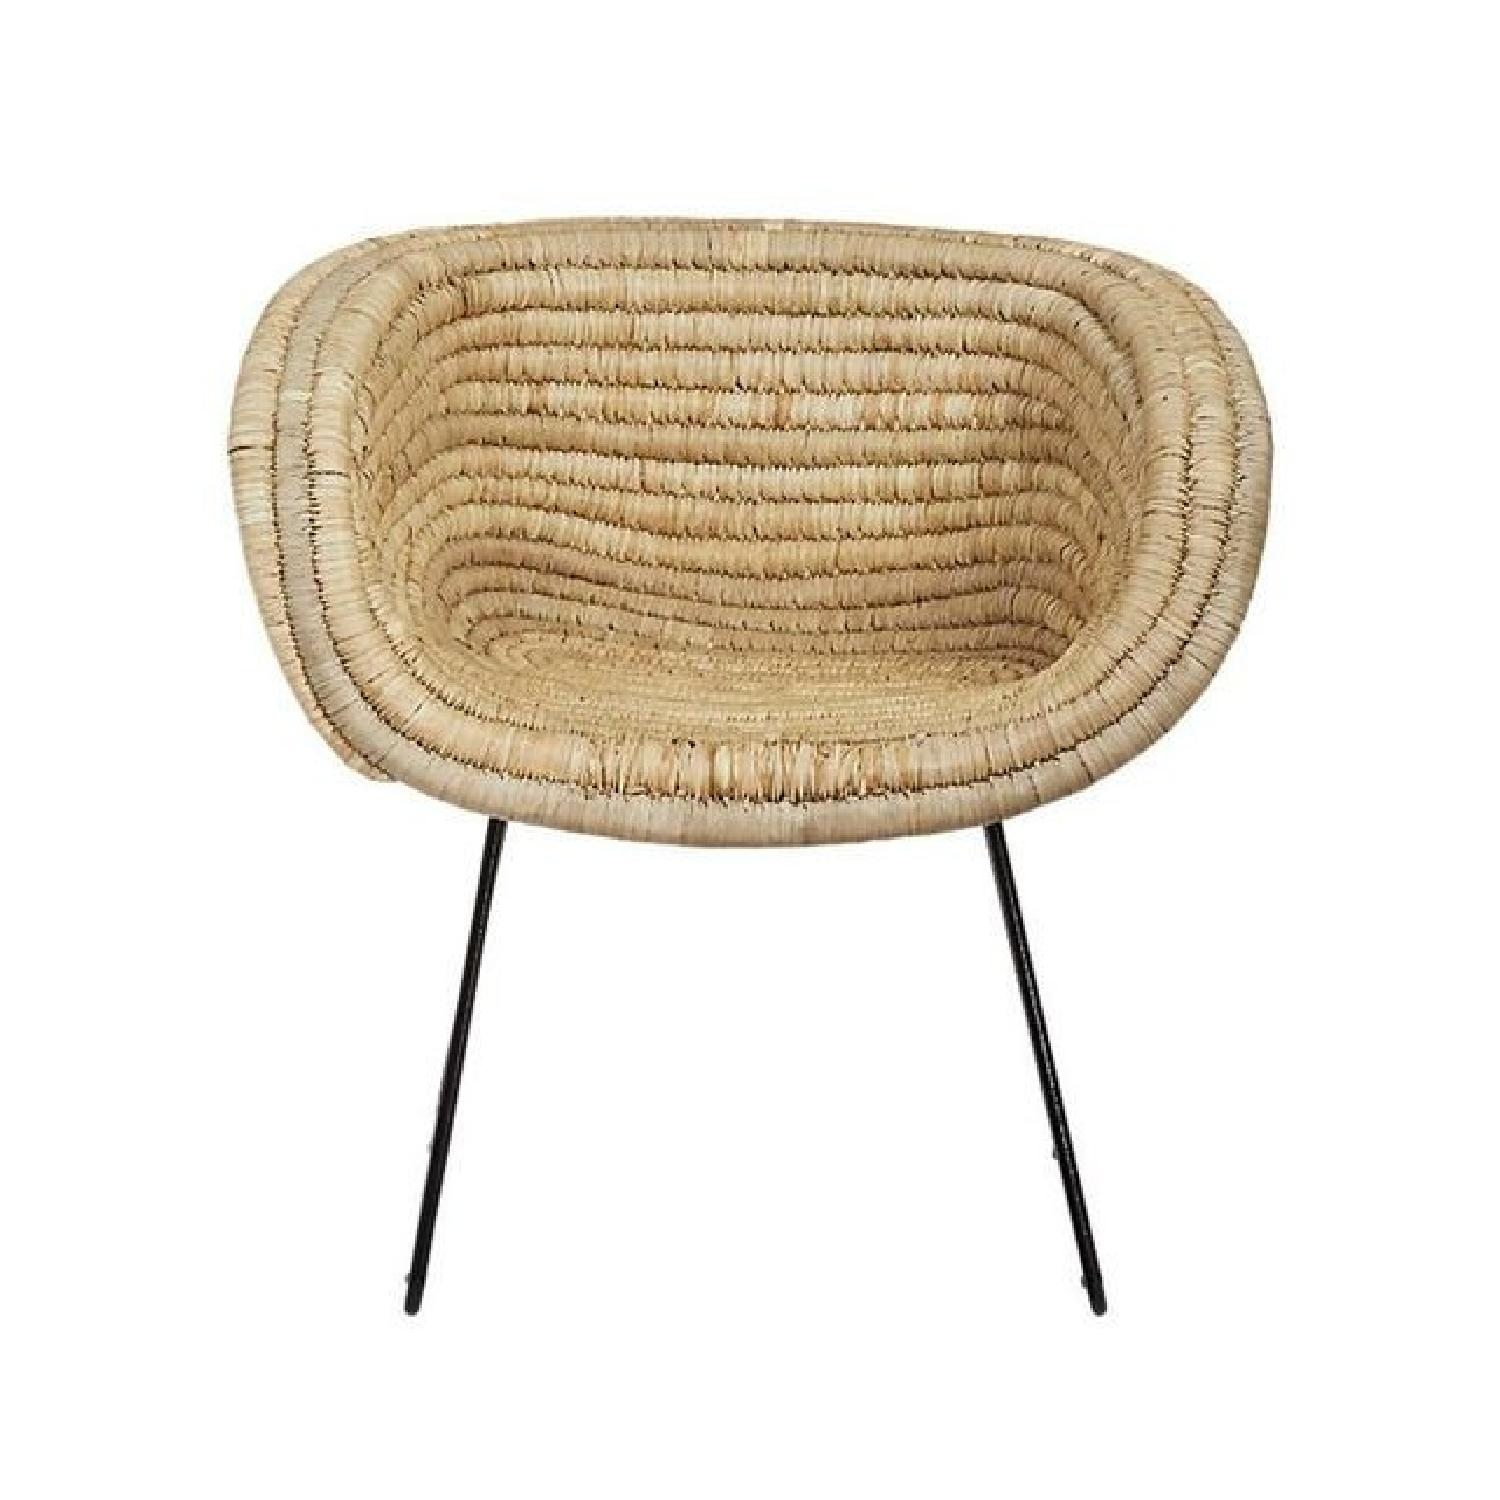 CB2 Rattan Basket Accent Chairs